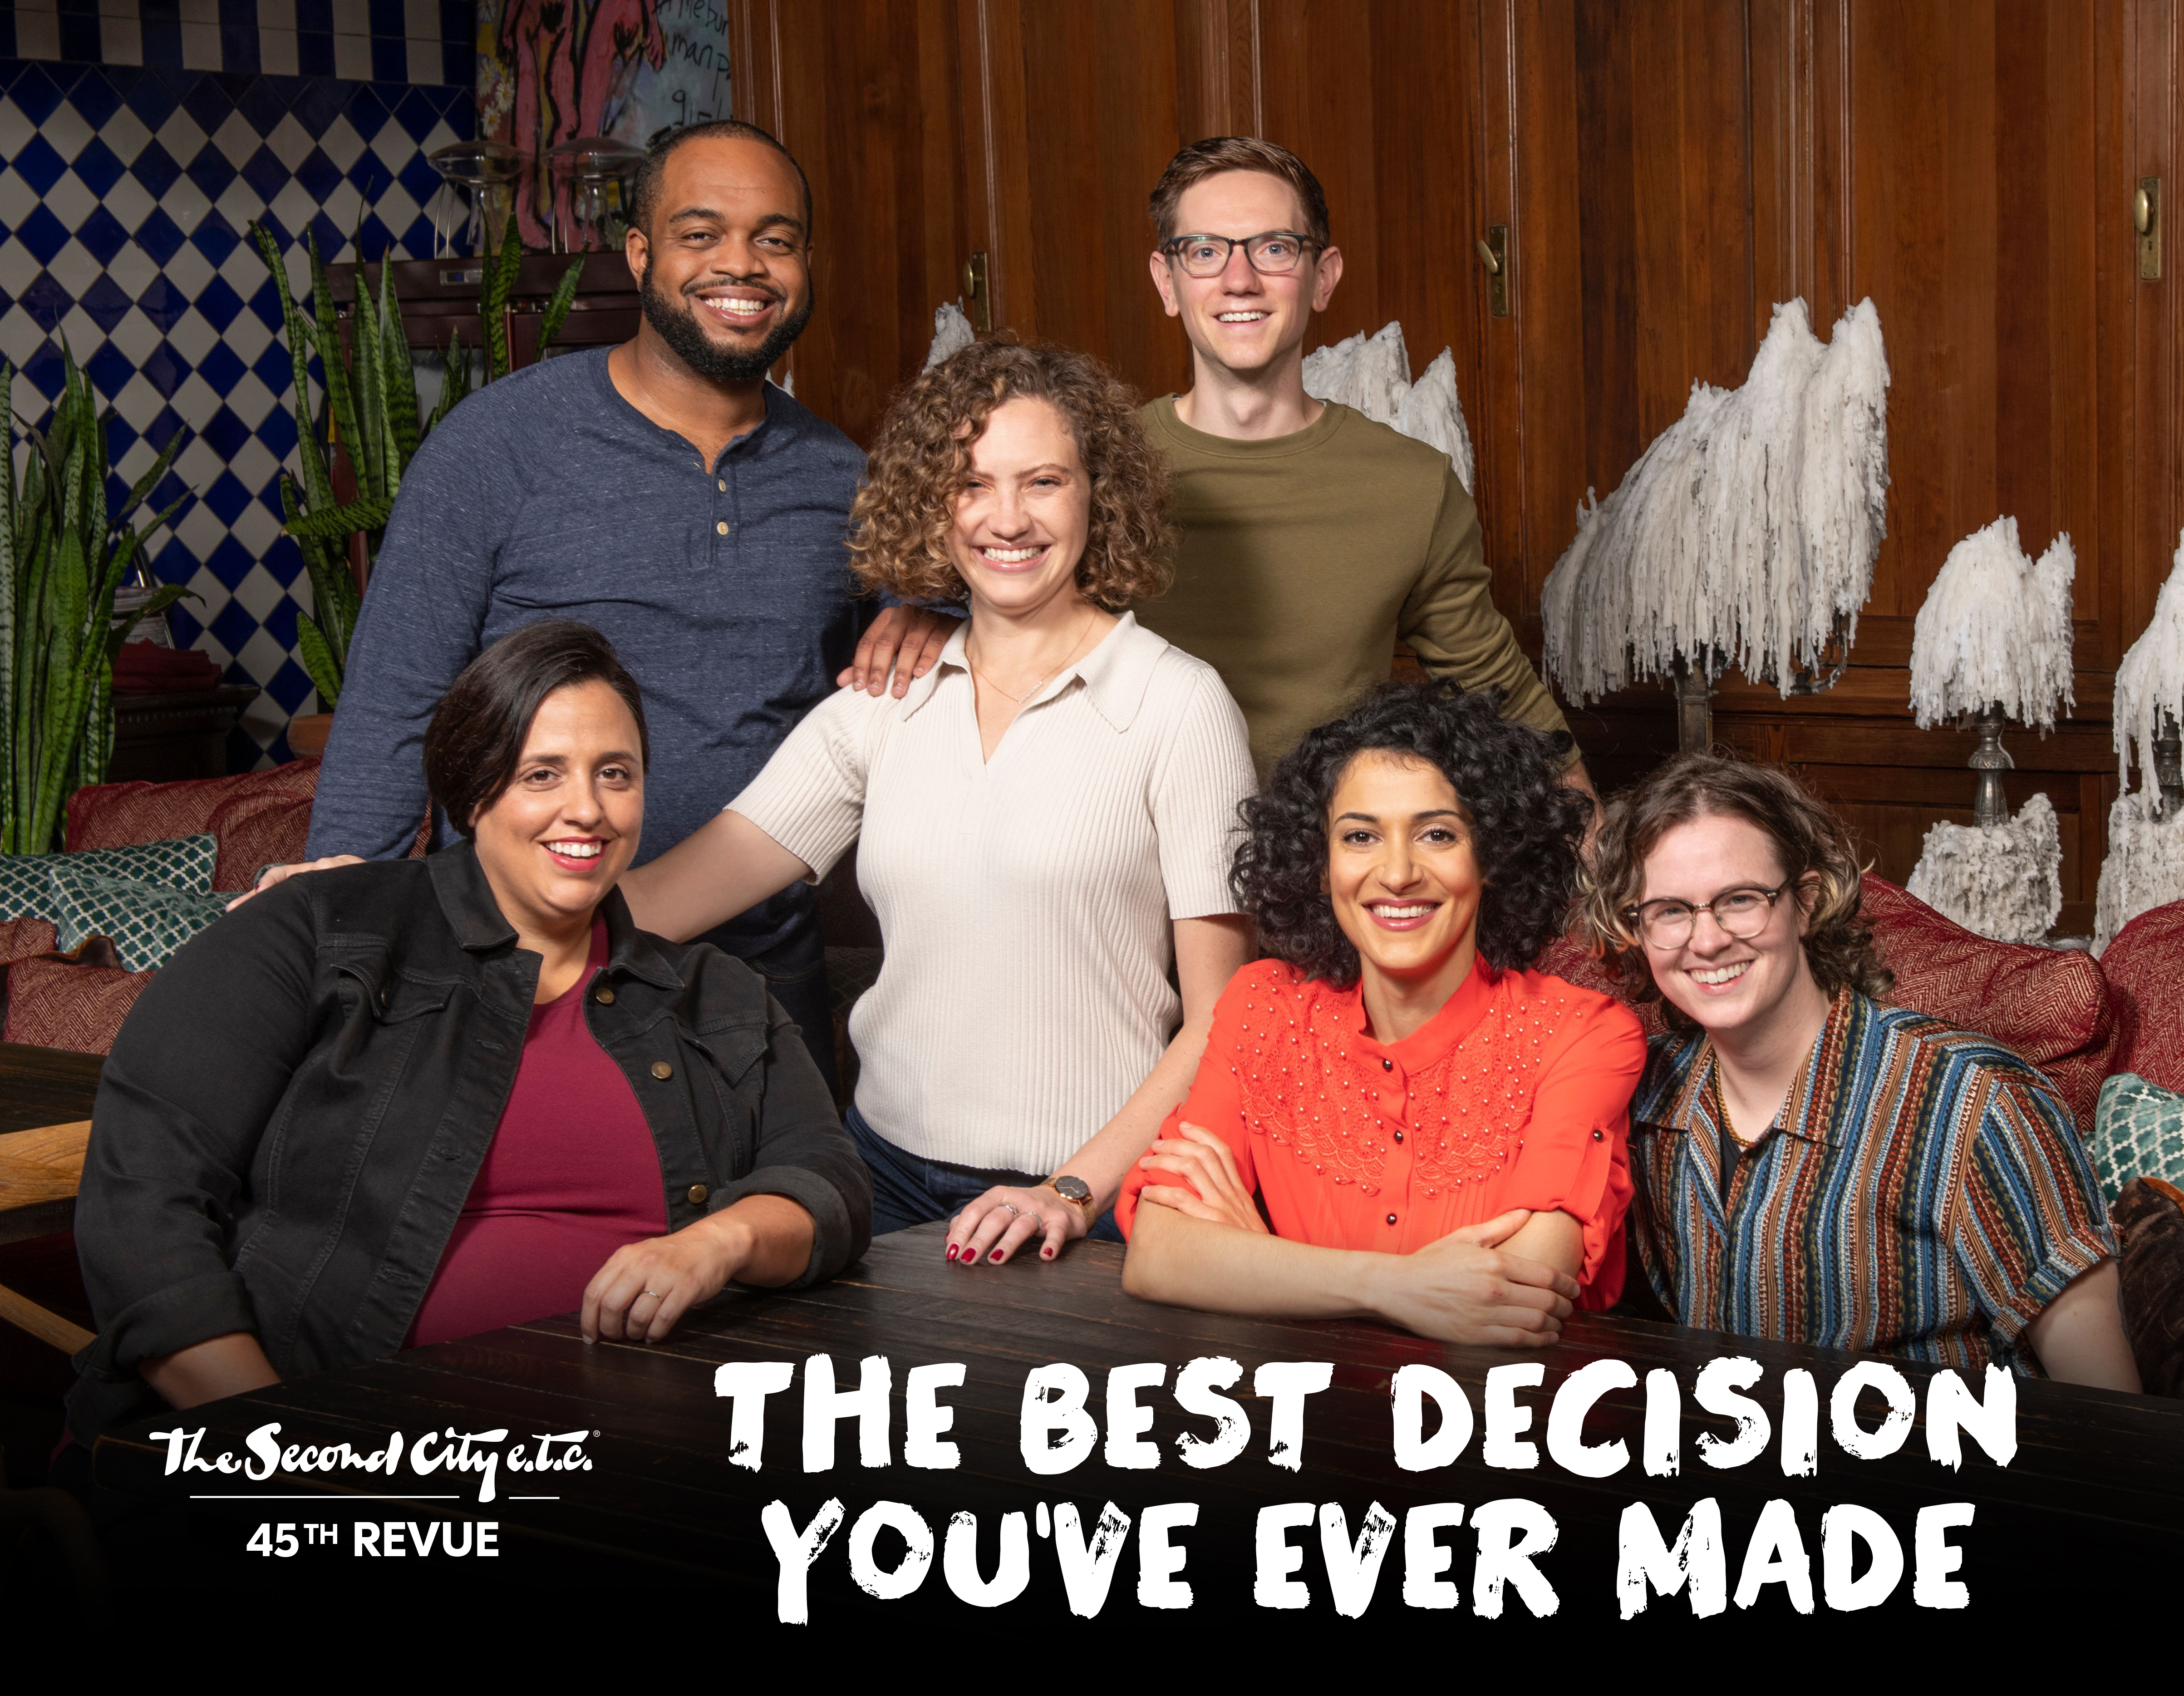 The Second City e.t.c. Presents 'The Best Decision You've Ever Made'